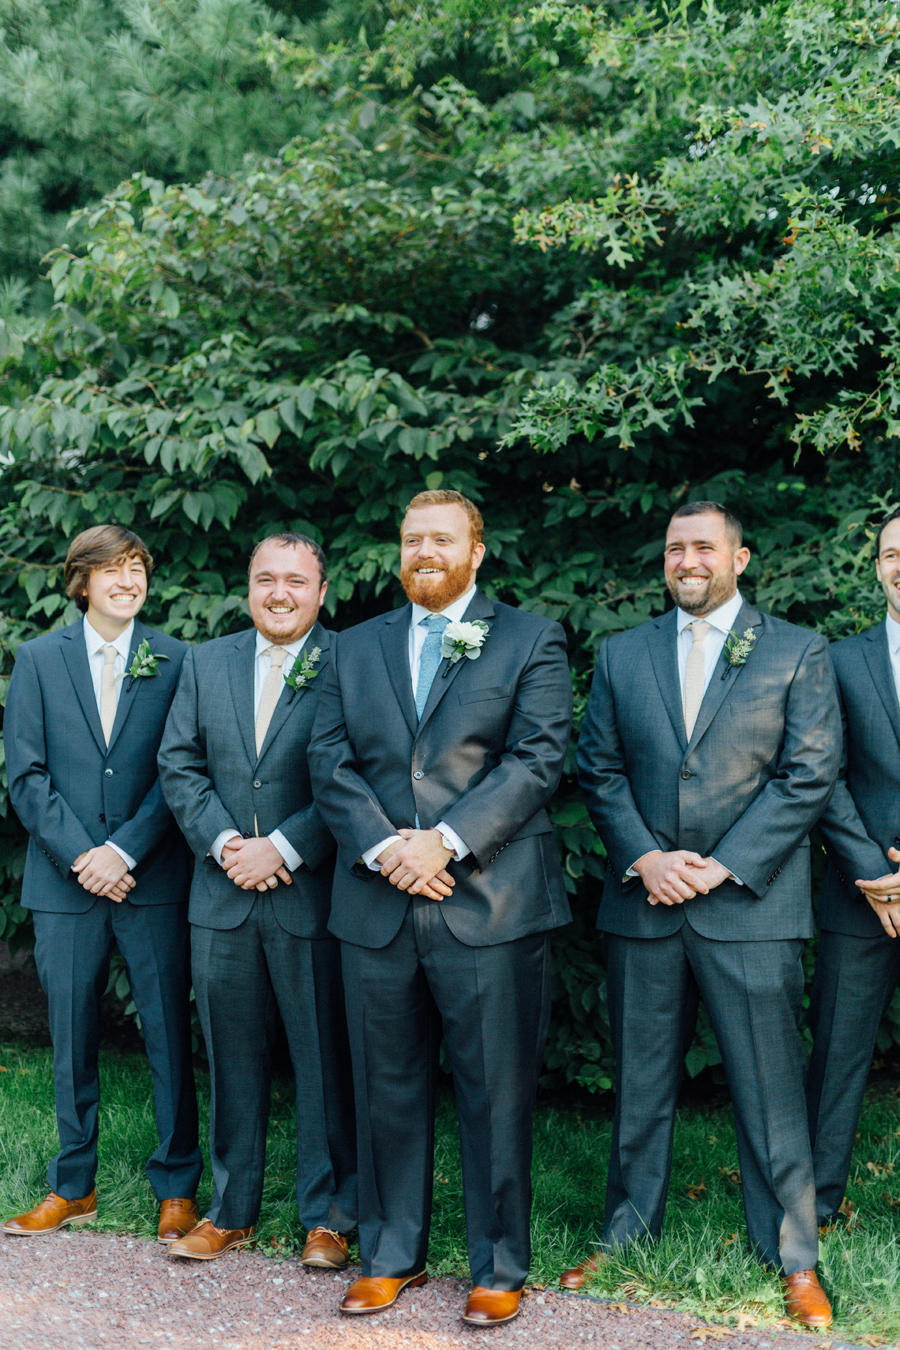 the-inn-at-leola-wedding-lancaster-pennsylvania-wedding-photographer-rebeka-viola-photograhy (40).jpg